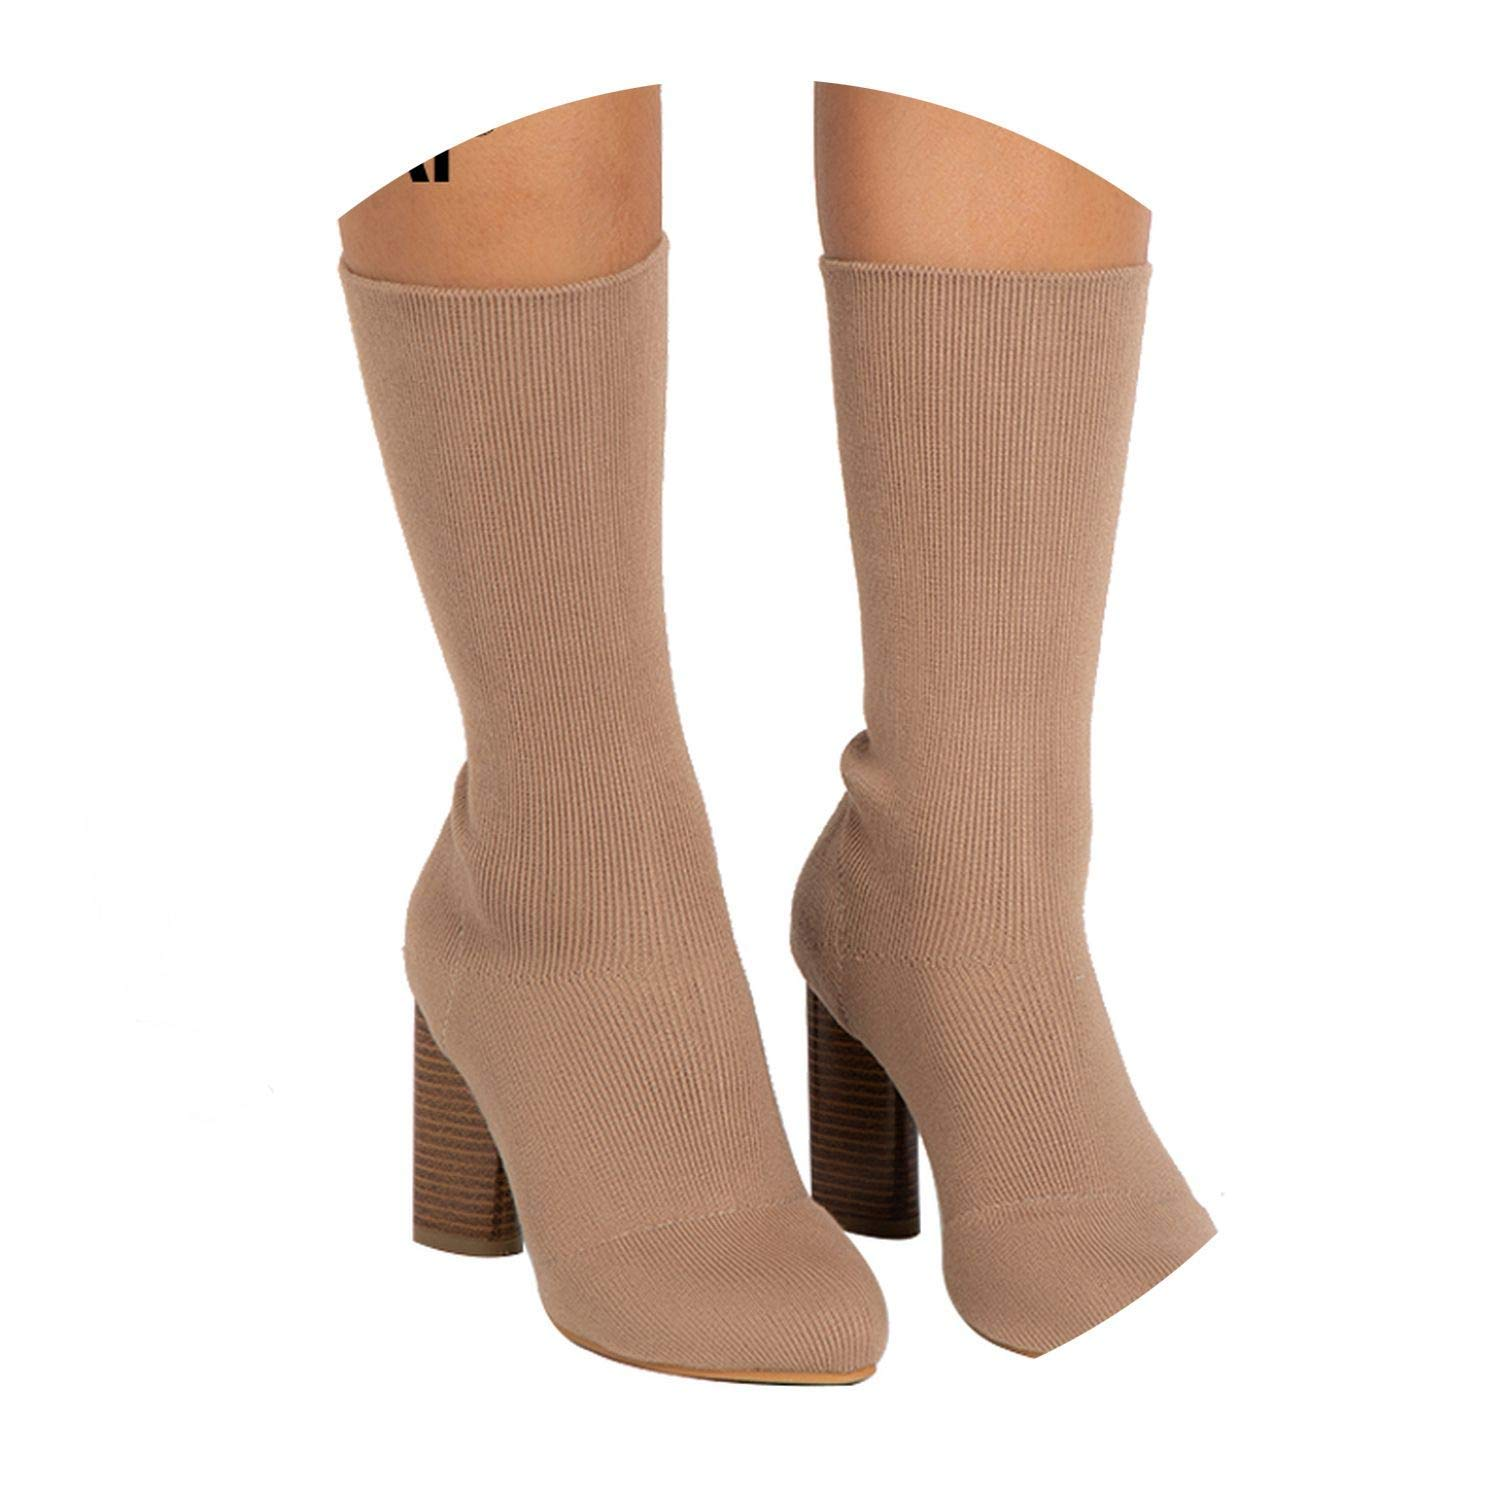 LIAOYLY Warm Winter Boots High Heels Slip-On Socks Pointed Toe Ankle Knitting Shoes 014C2577-4,Apricot,7.5,